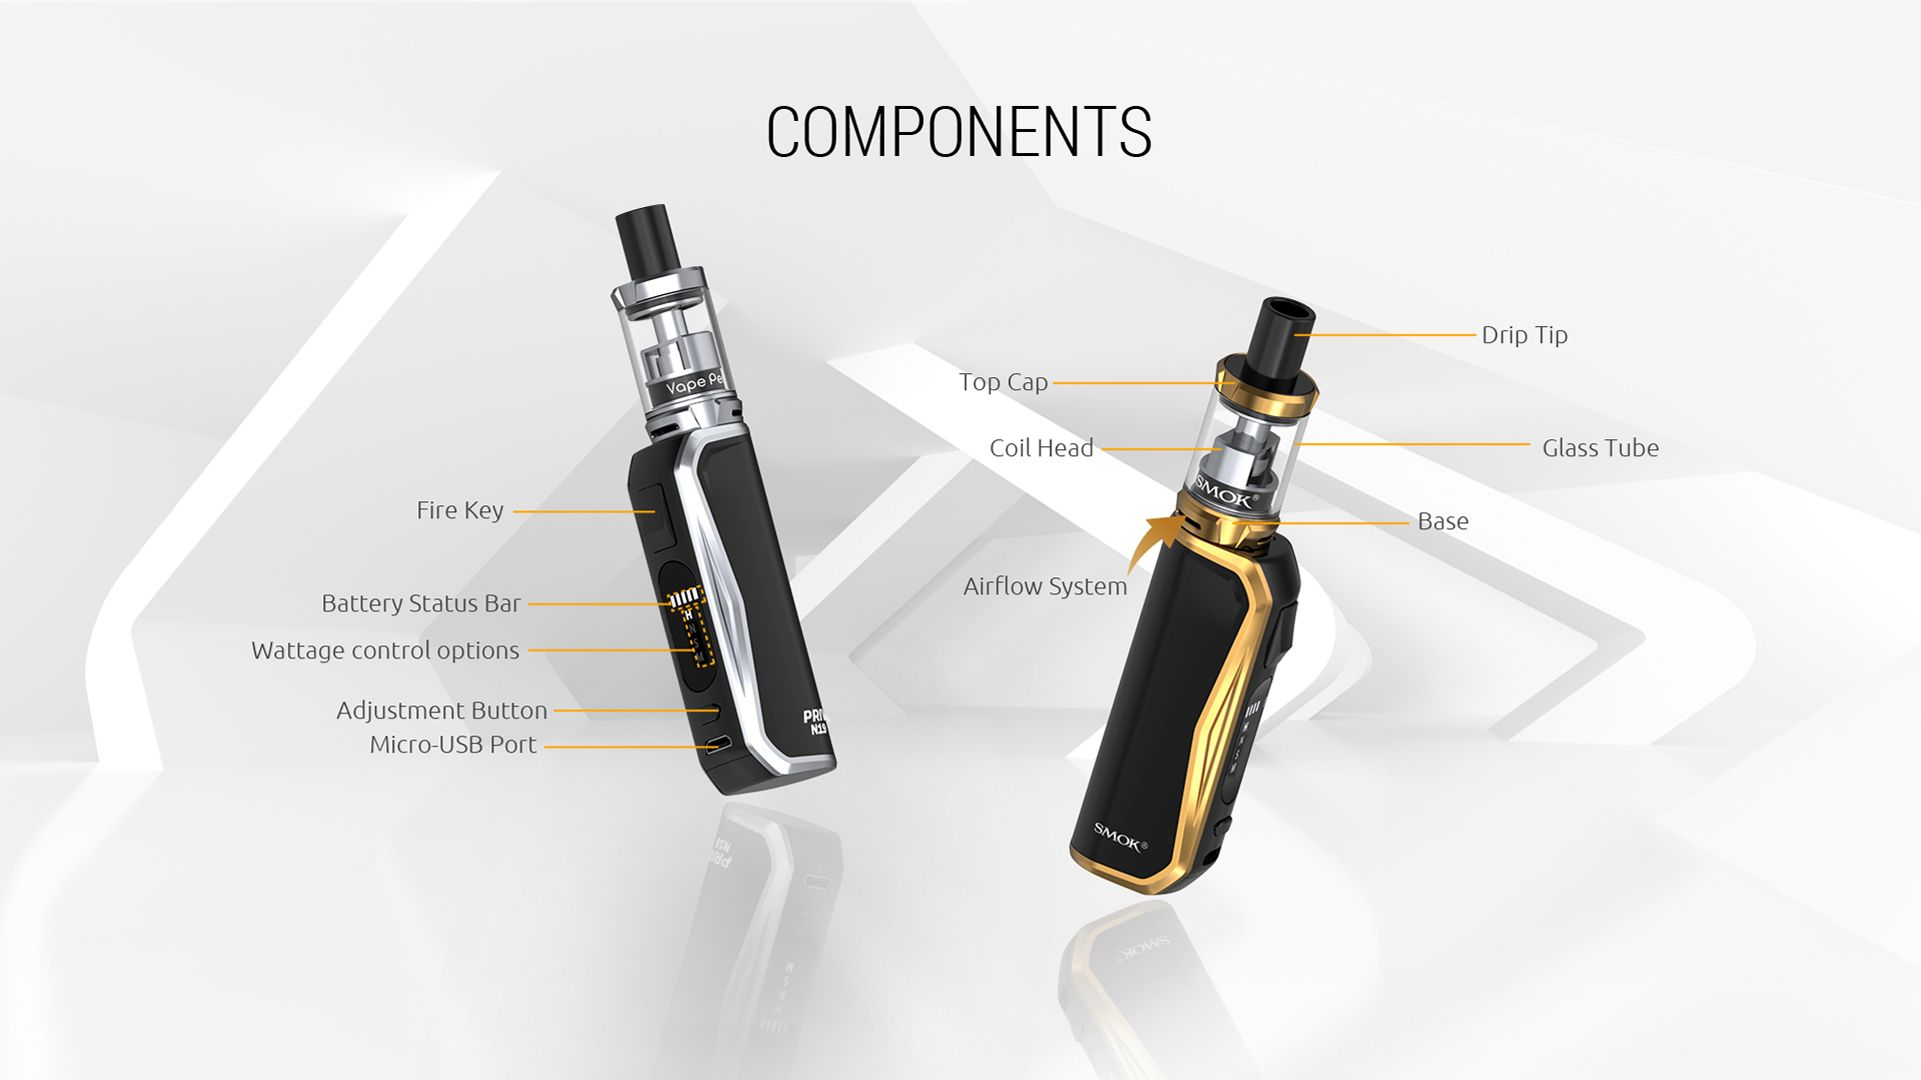 Smok Priv N19 Kit device parts rundown components